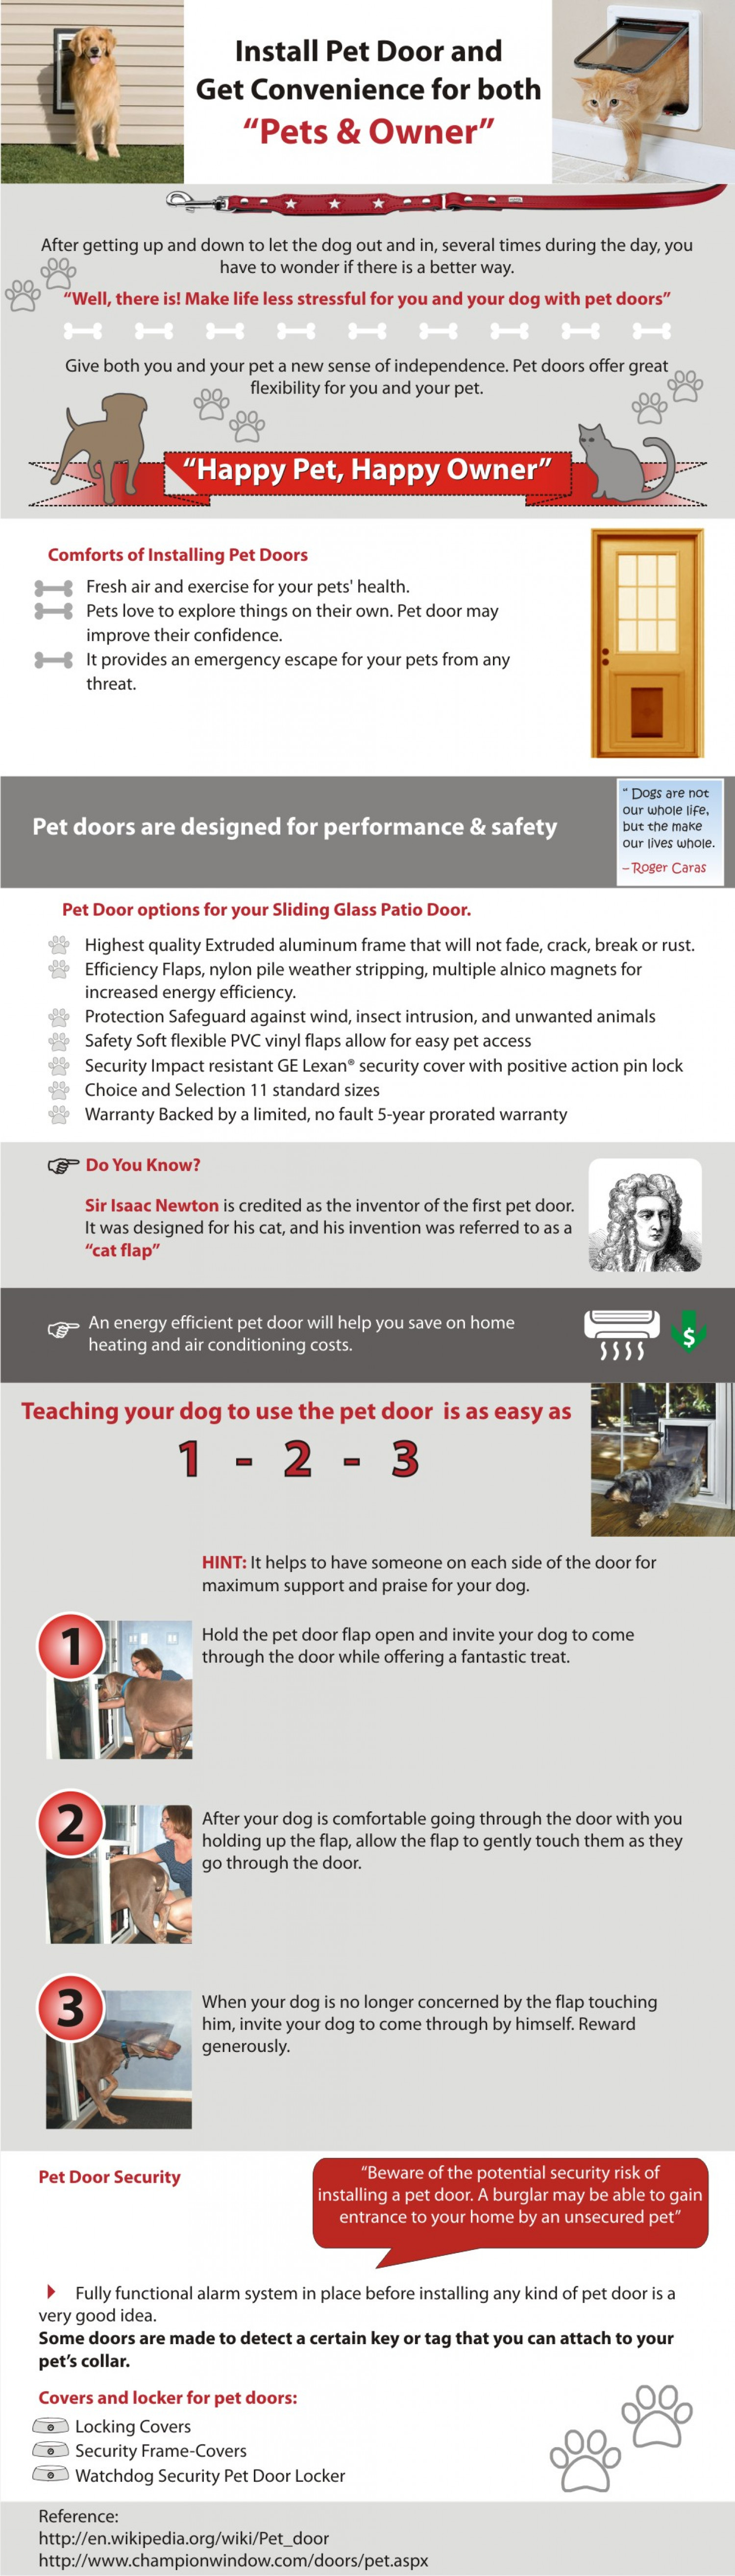 "Install Pet Door and Get Convenience for Both ""Pets & Owner"" Infographic"